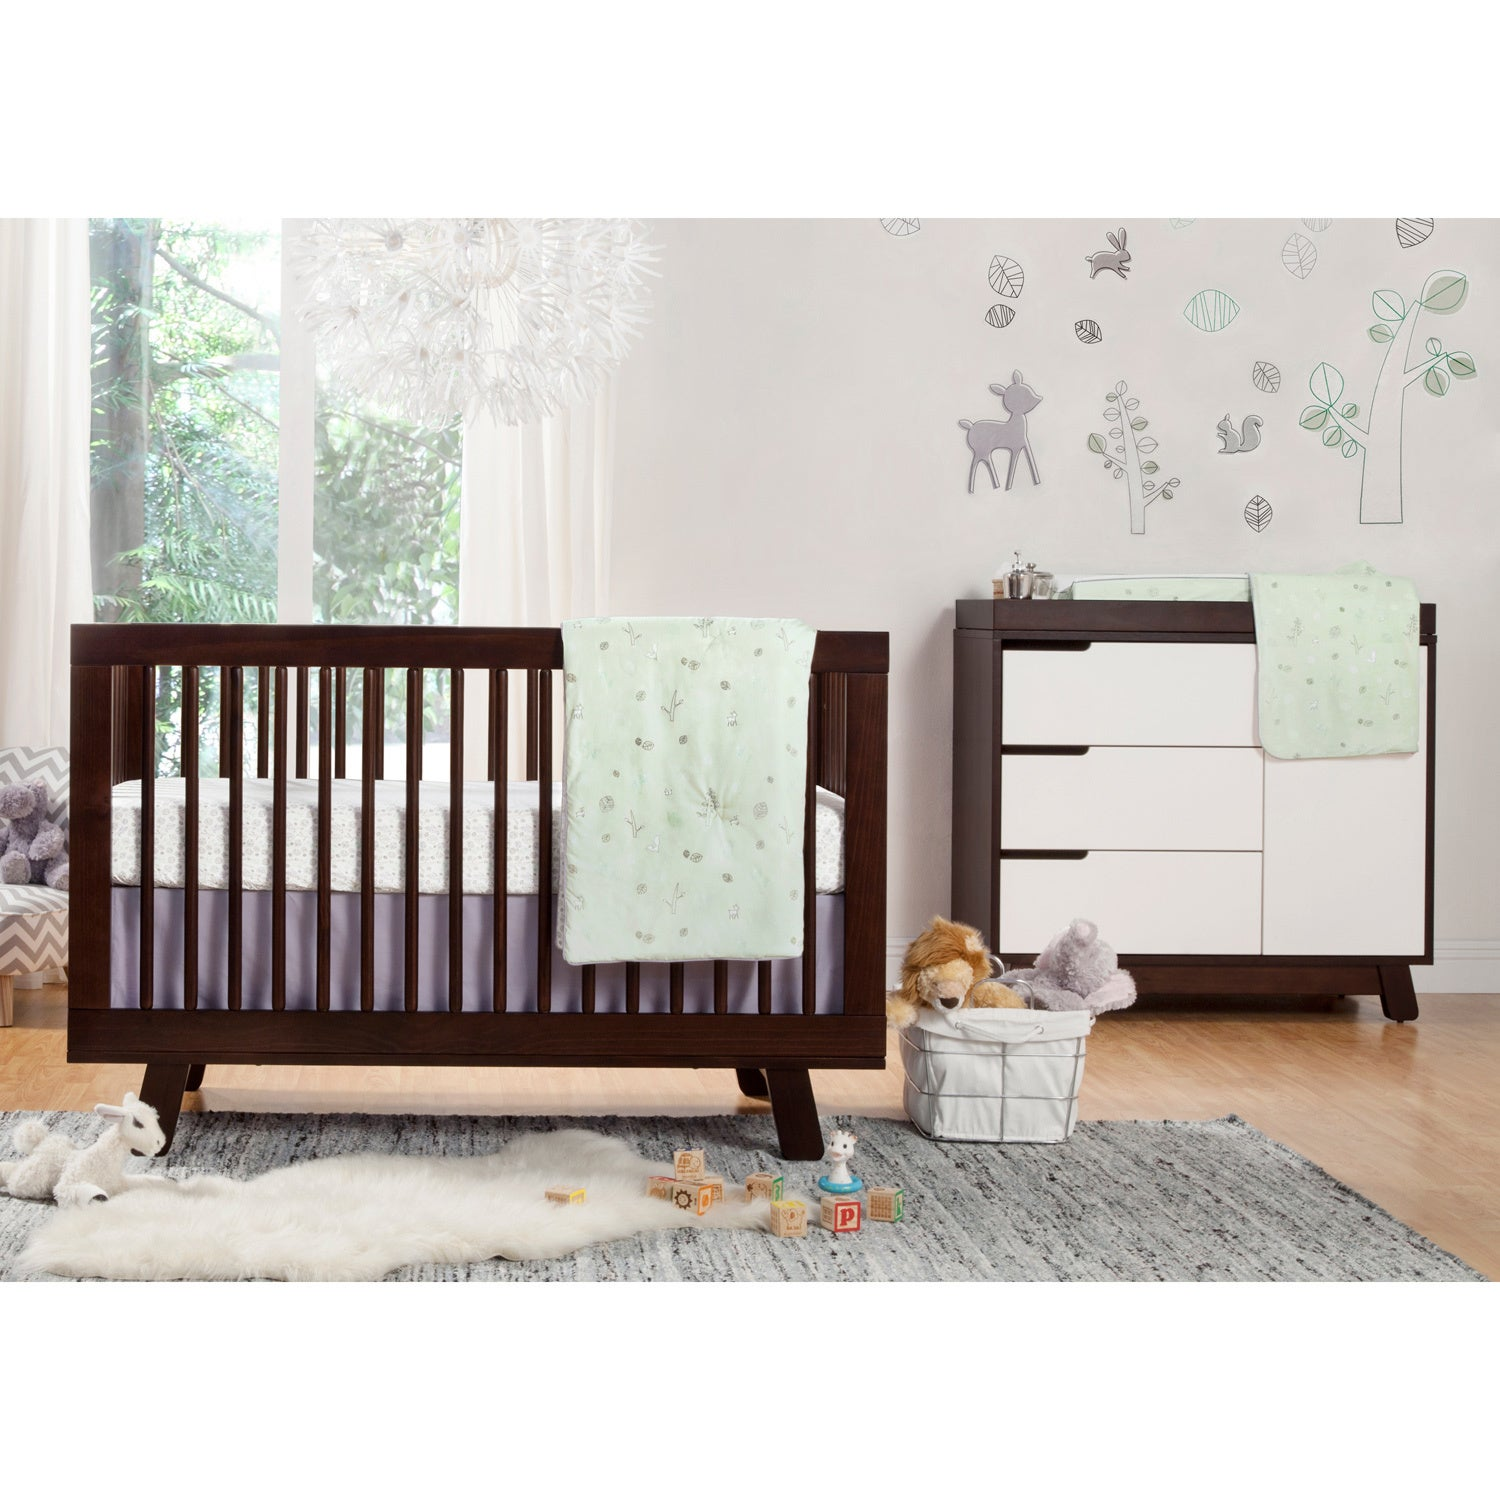 kit crib bed toddler in home product overstock today cribs garden shipping babyletto free mercer modo conversion with convertible